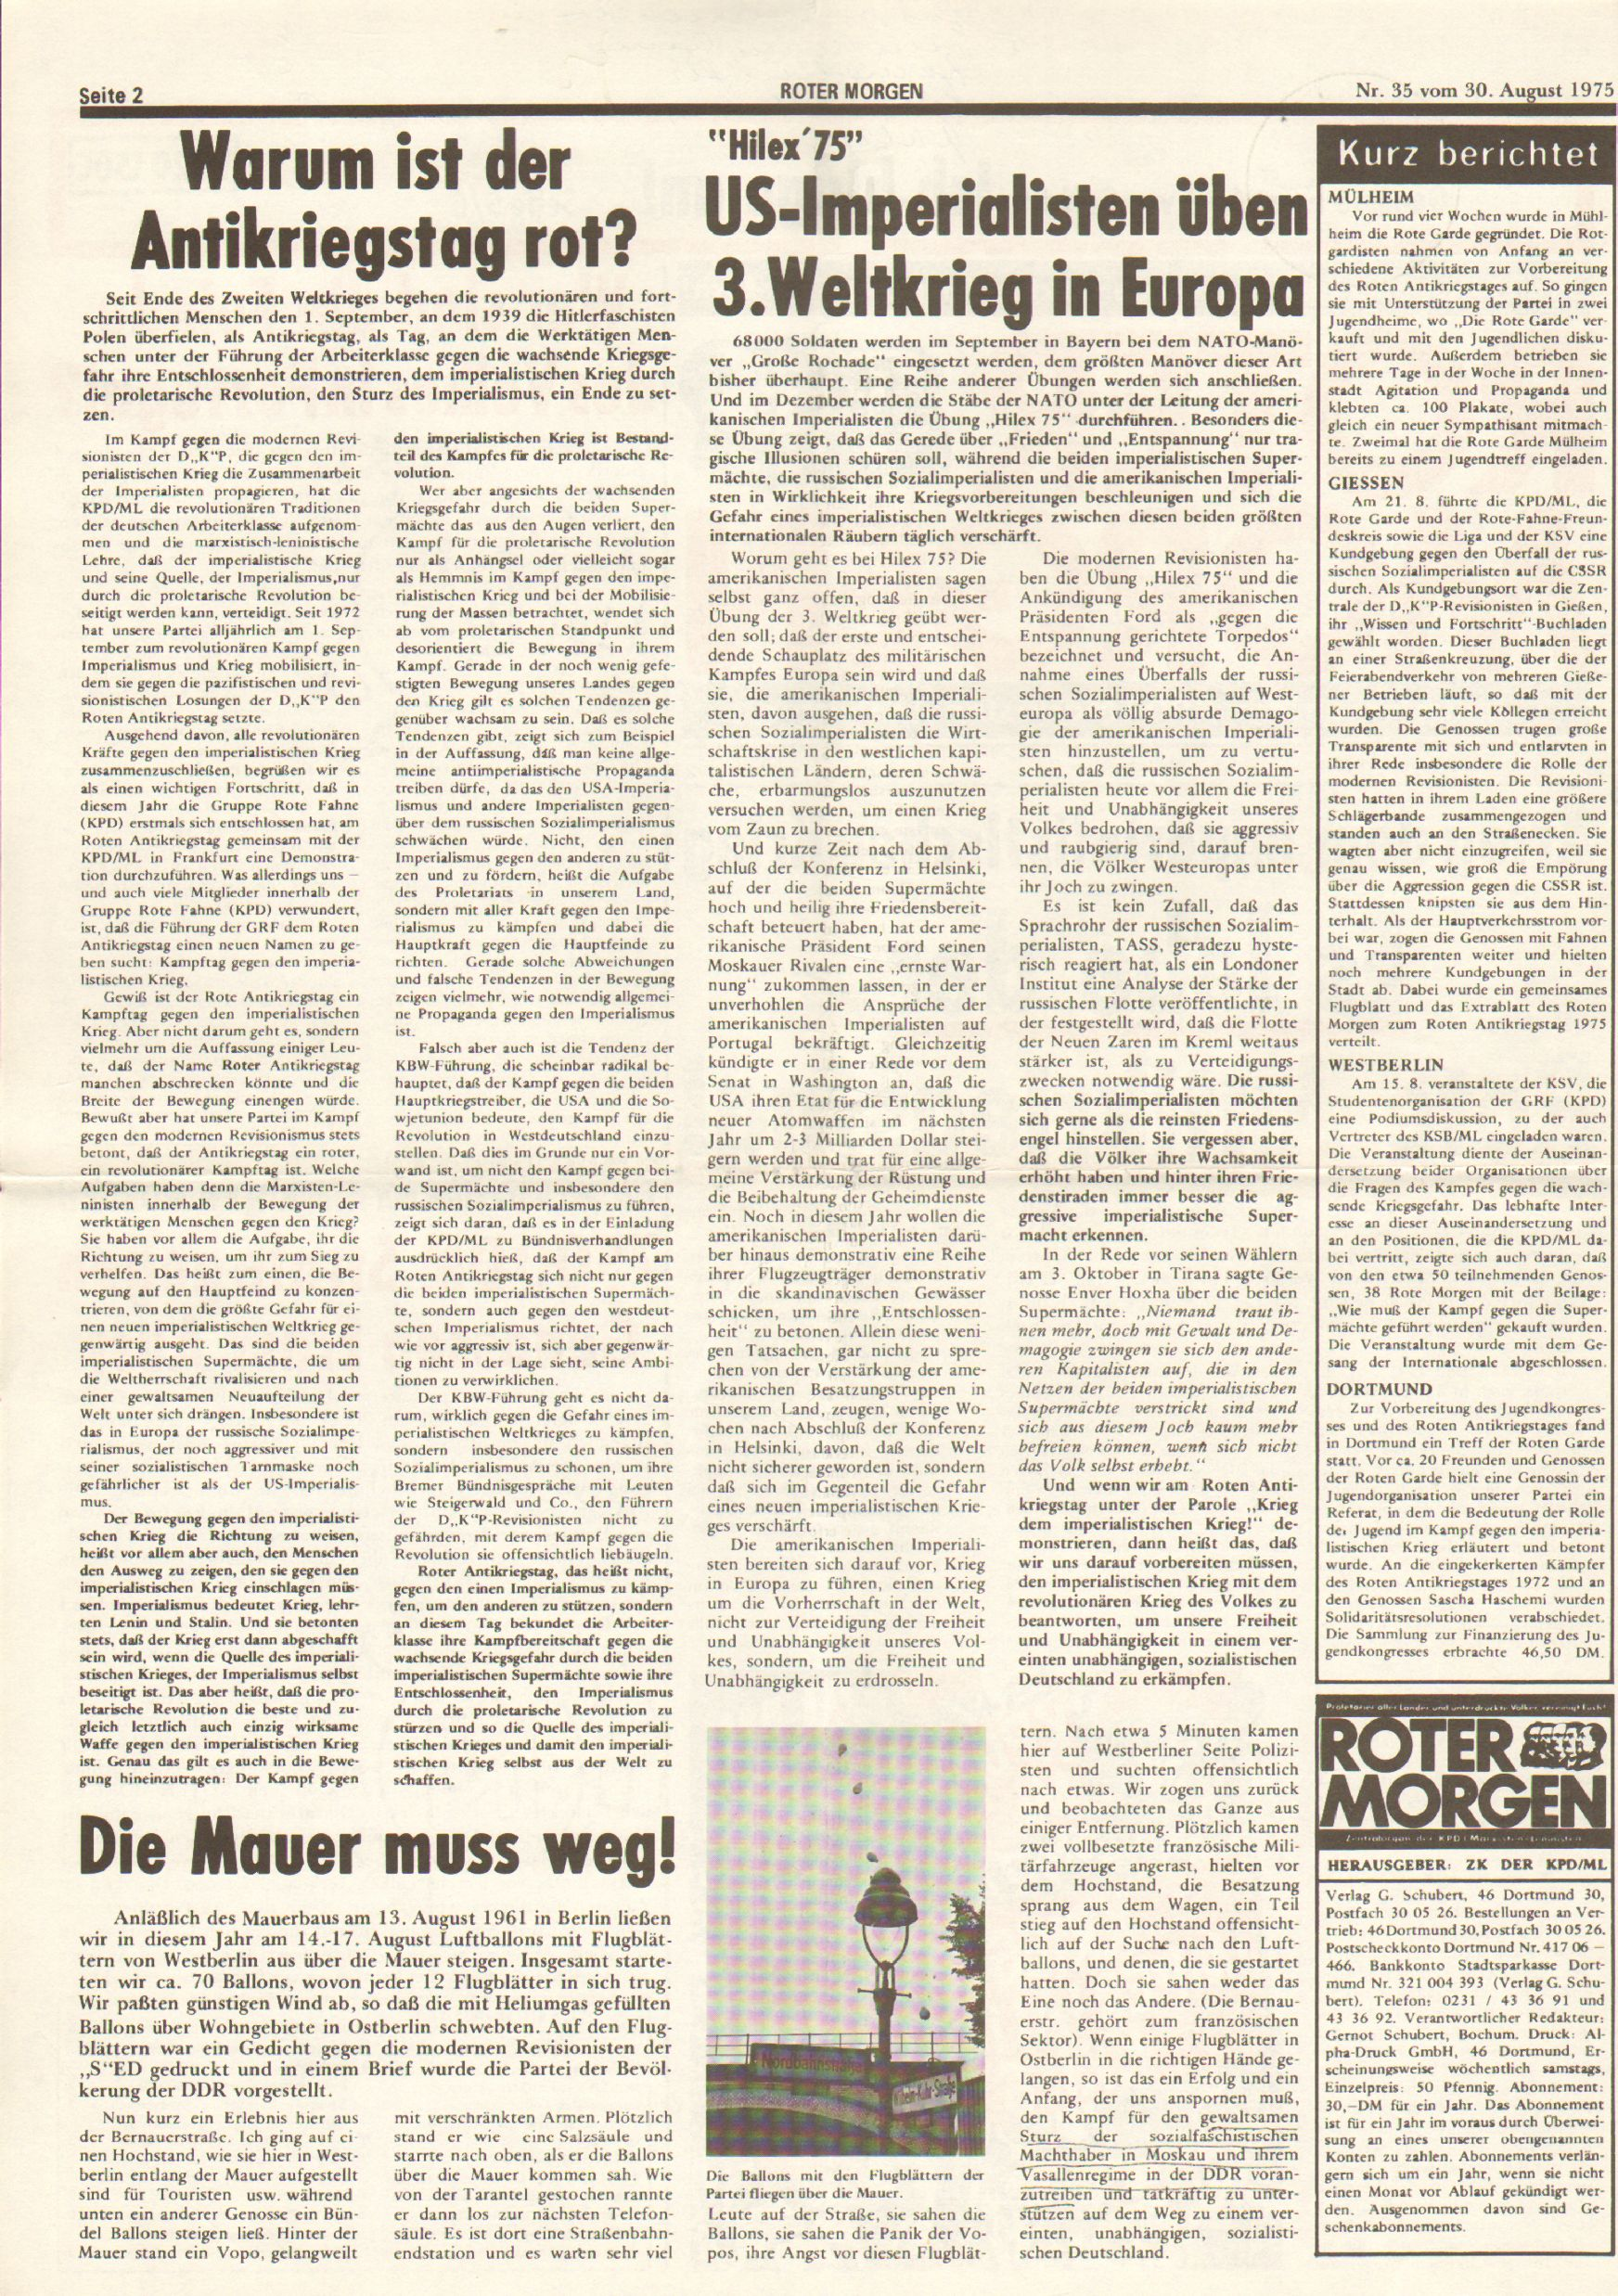 Roter Morgen, 9. Jg., 30. August 1975, Nr. 35, Seite 2